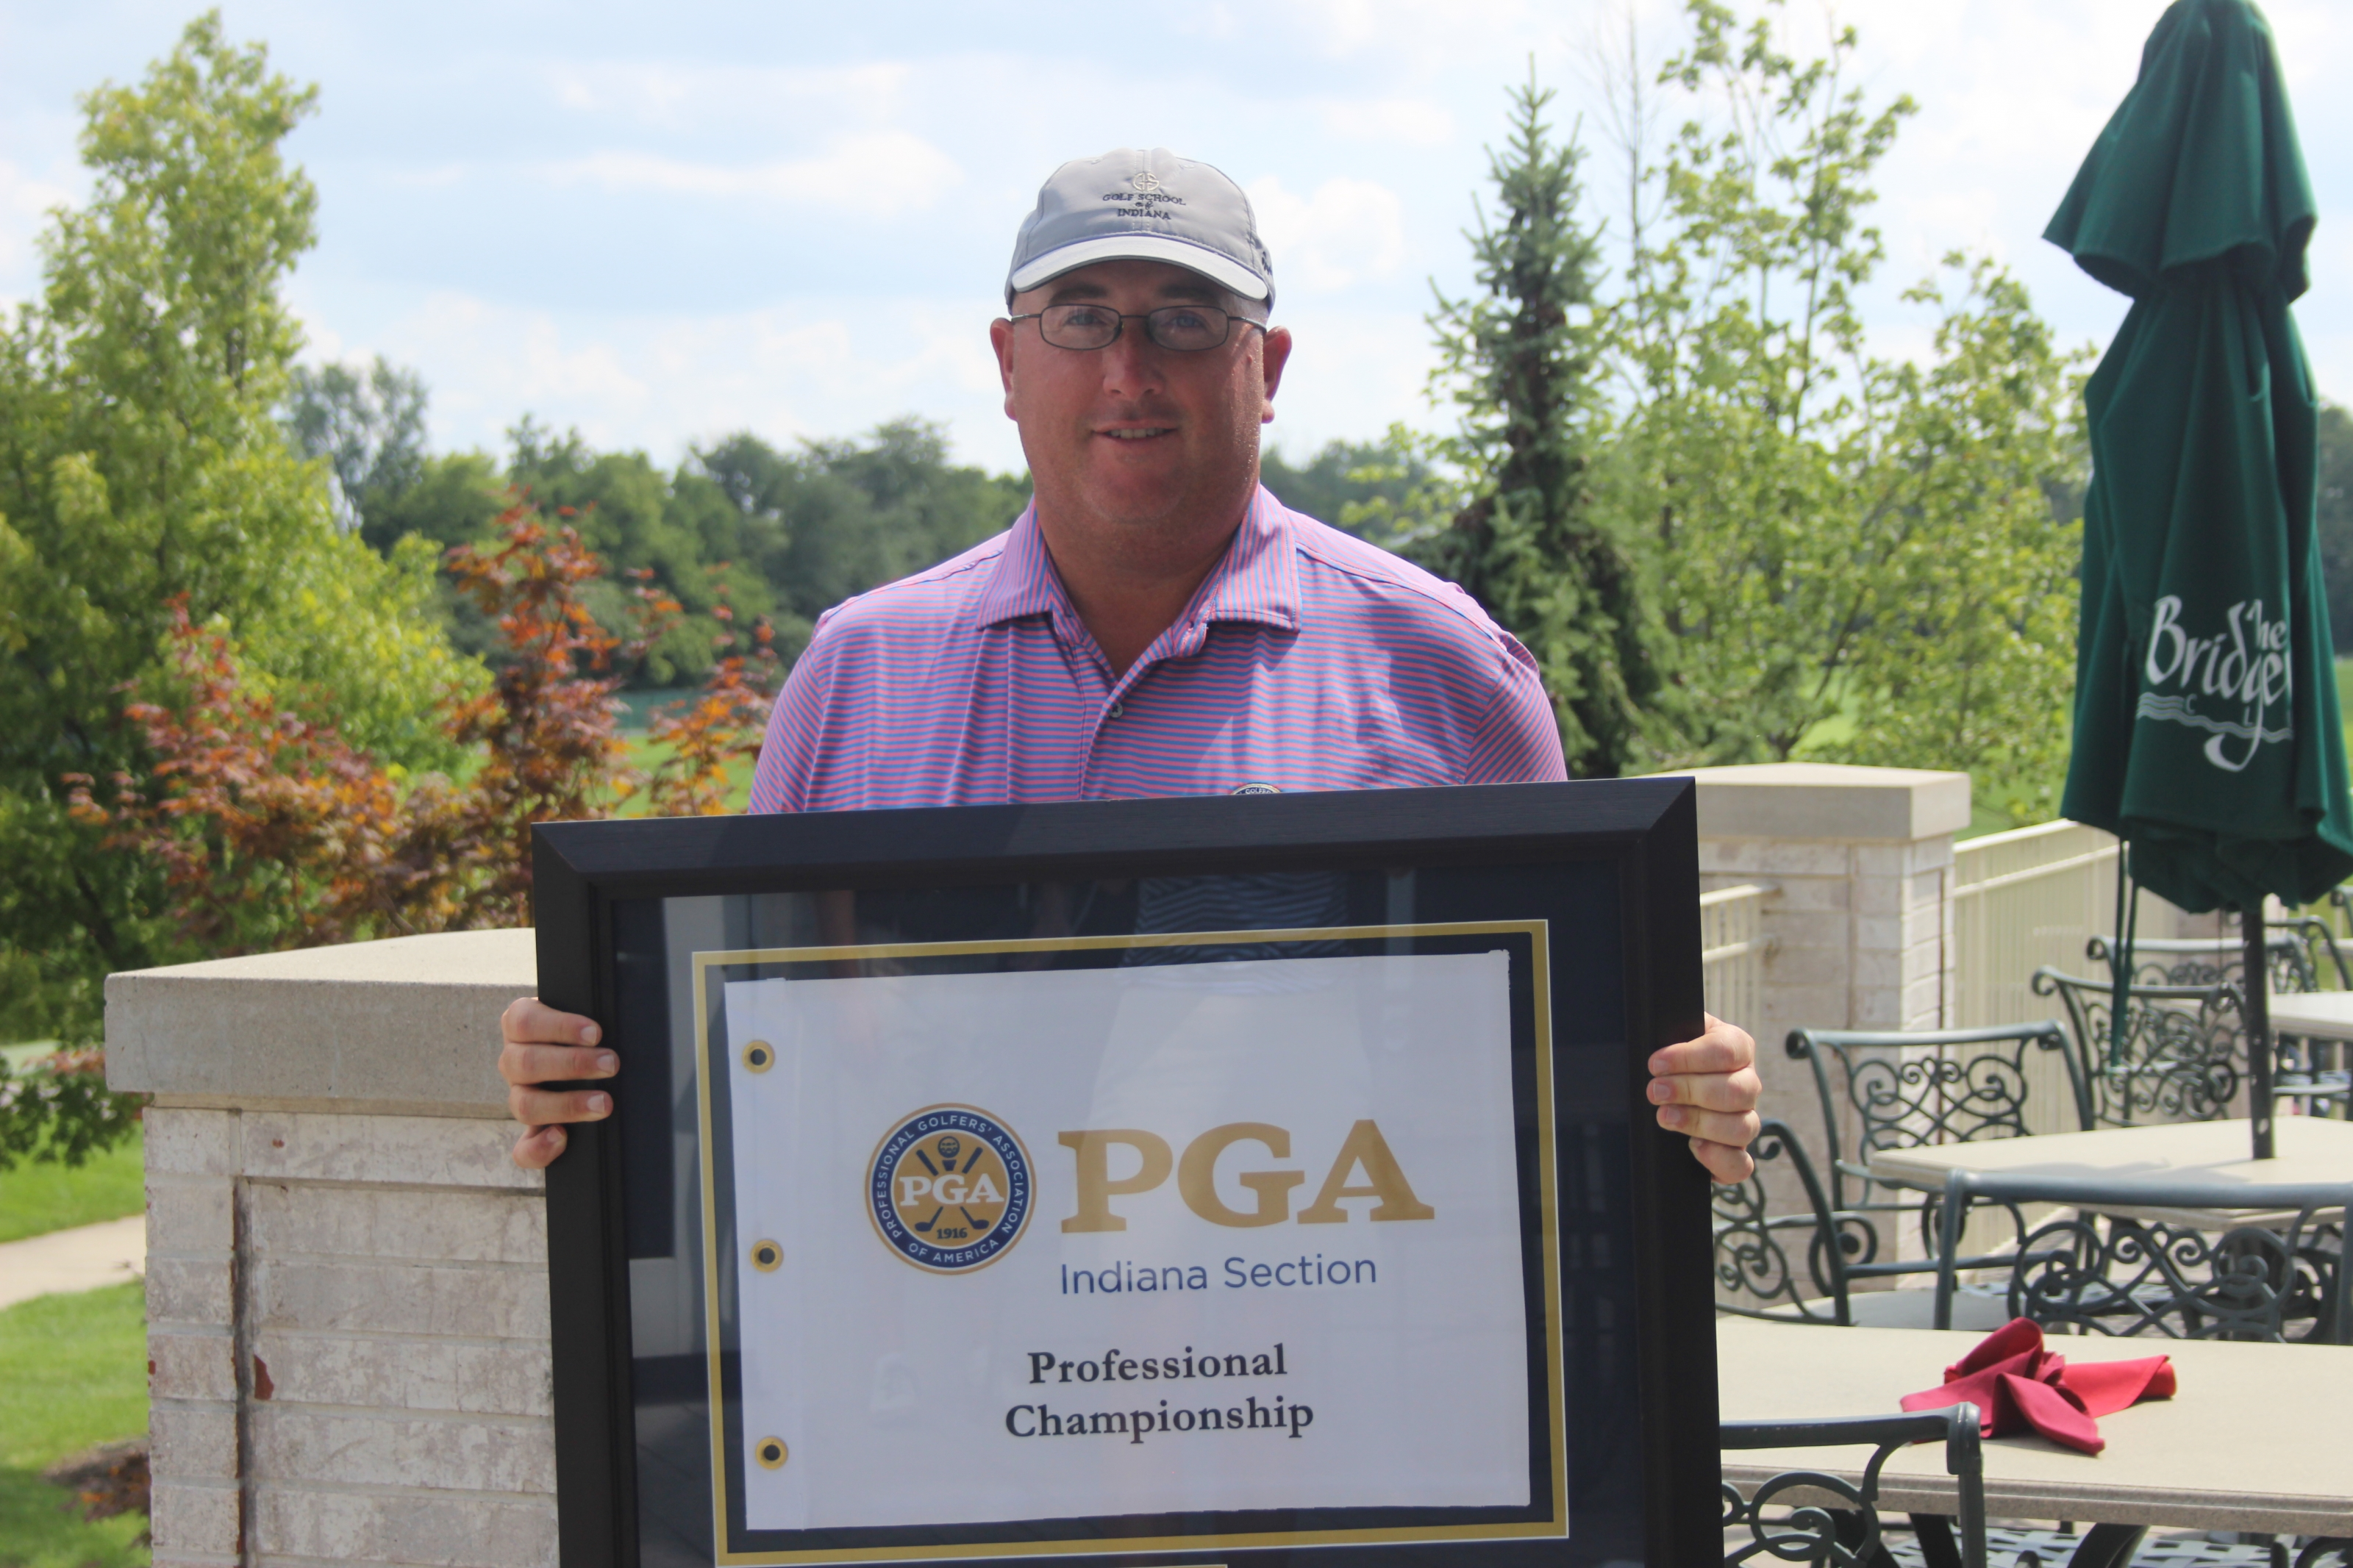 Fellers Makes Comeback to Win Professional Championship